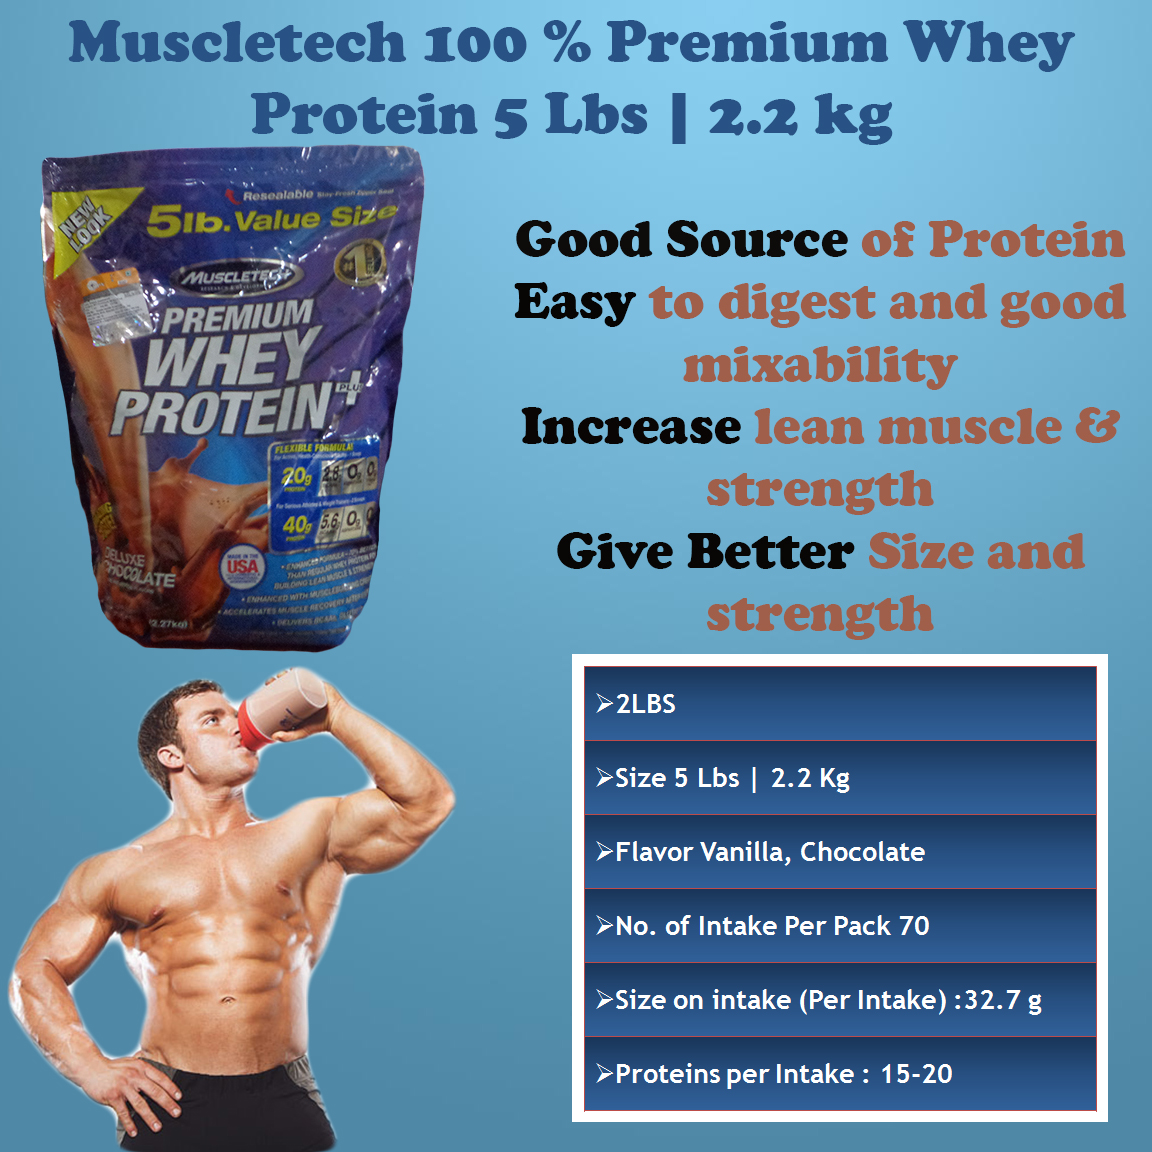 Muscletech 100 Premium Whey Protein 5 Lbs